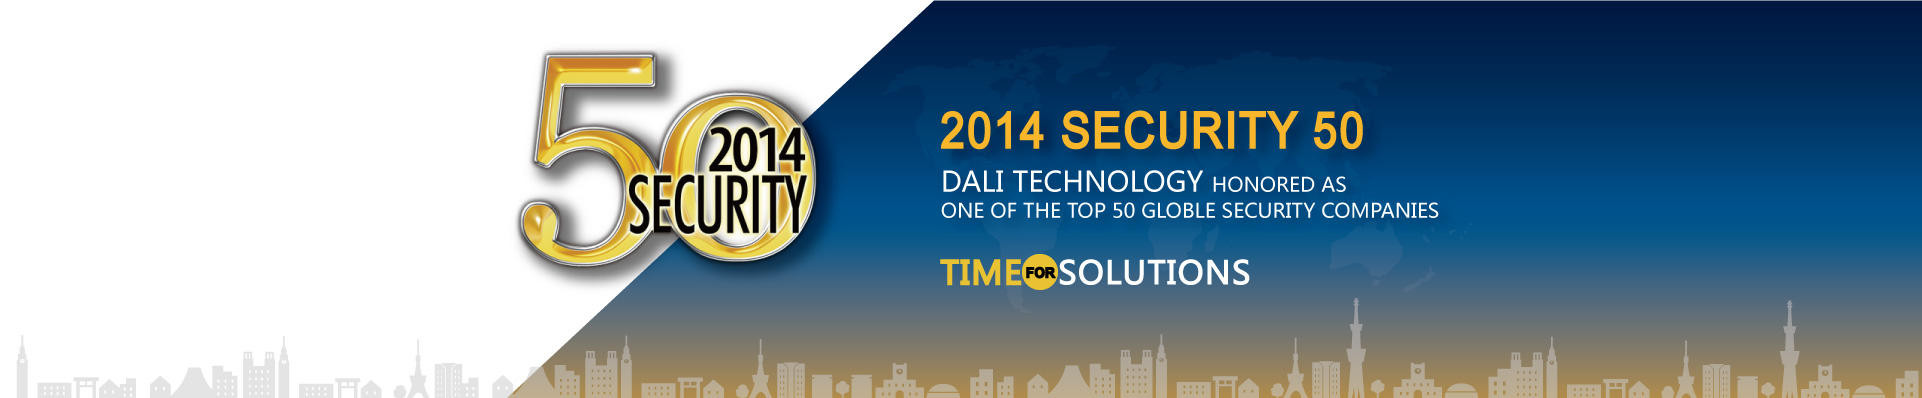 2014security50